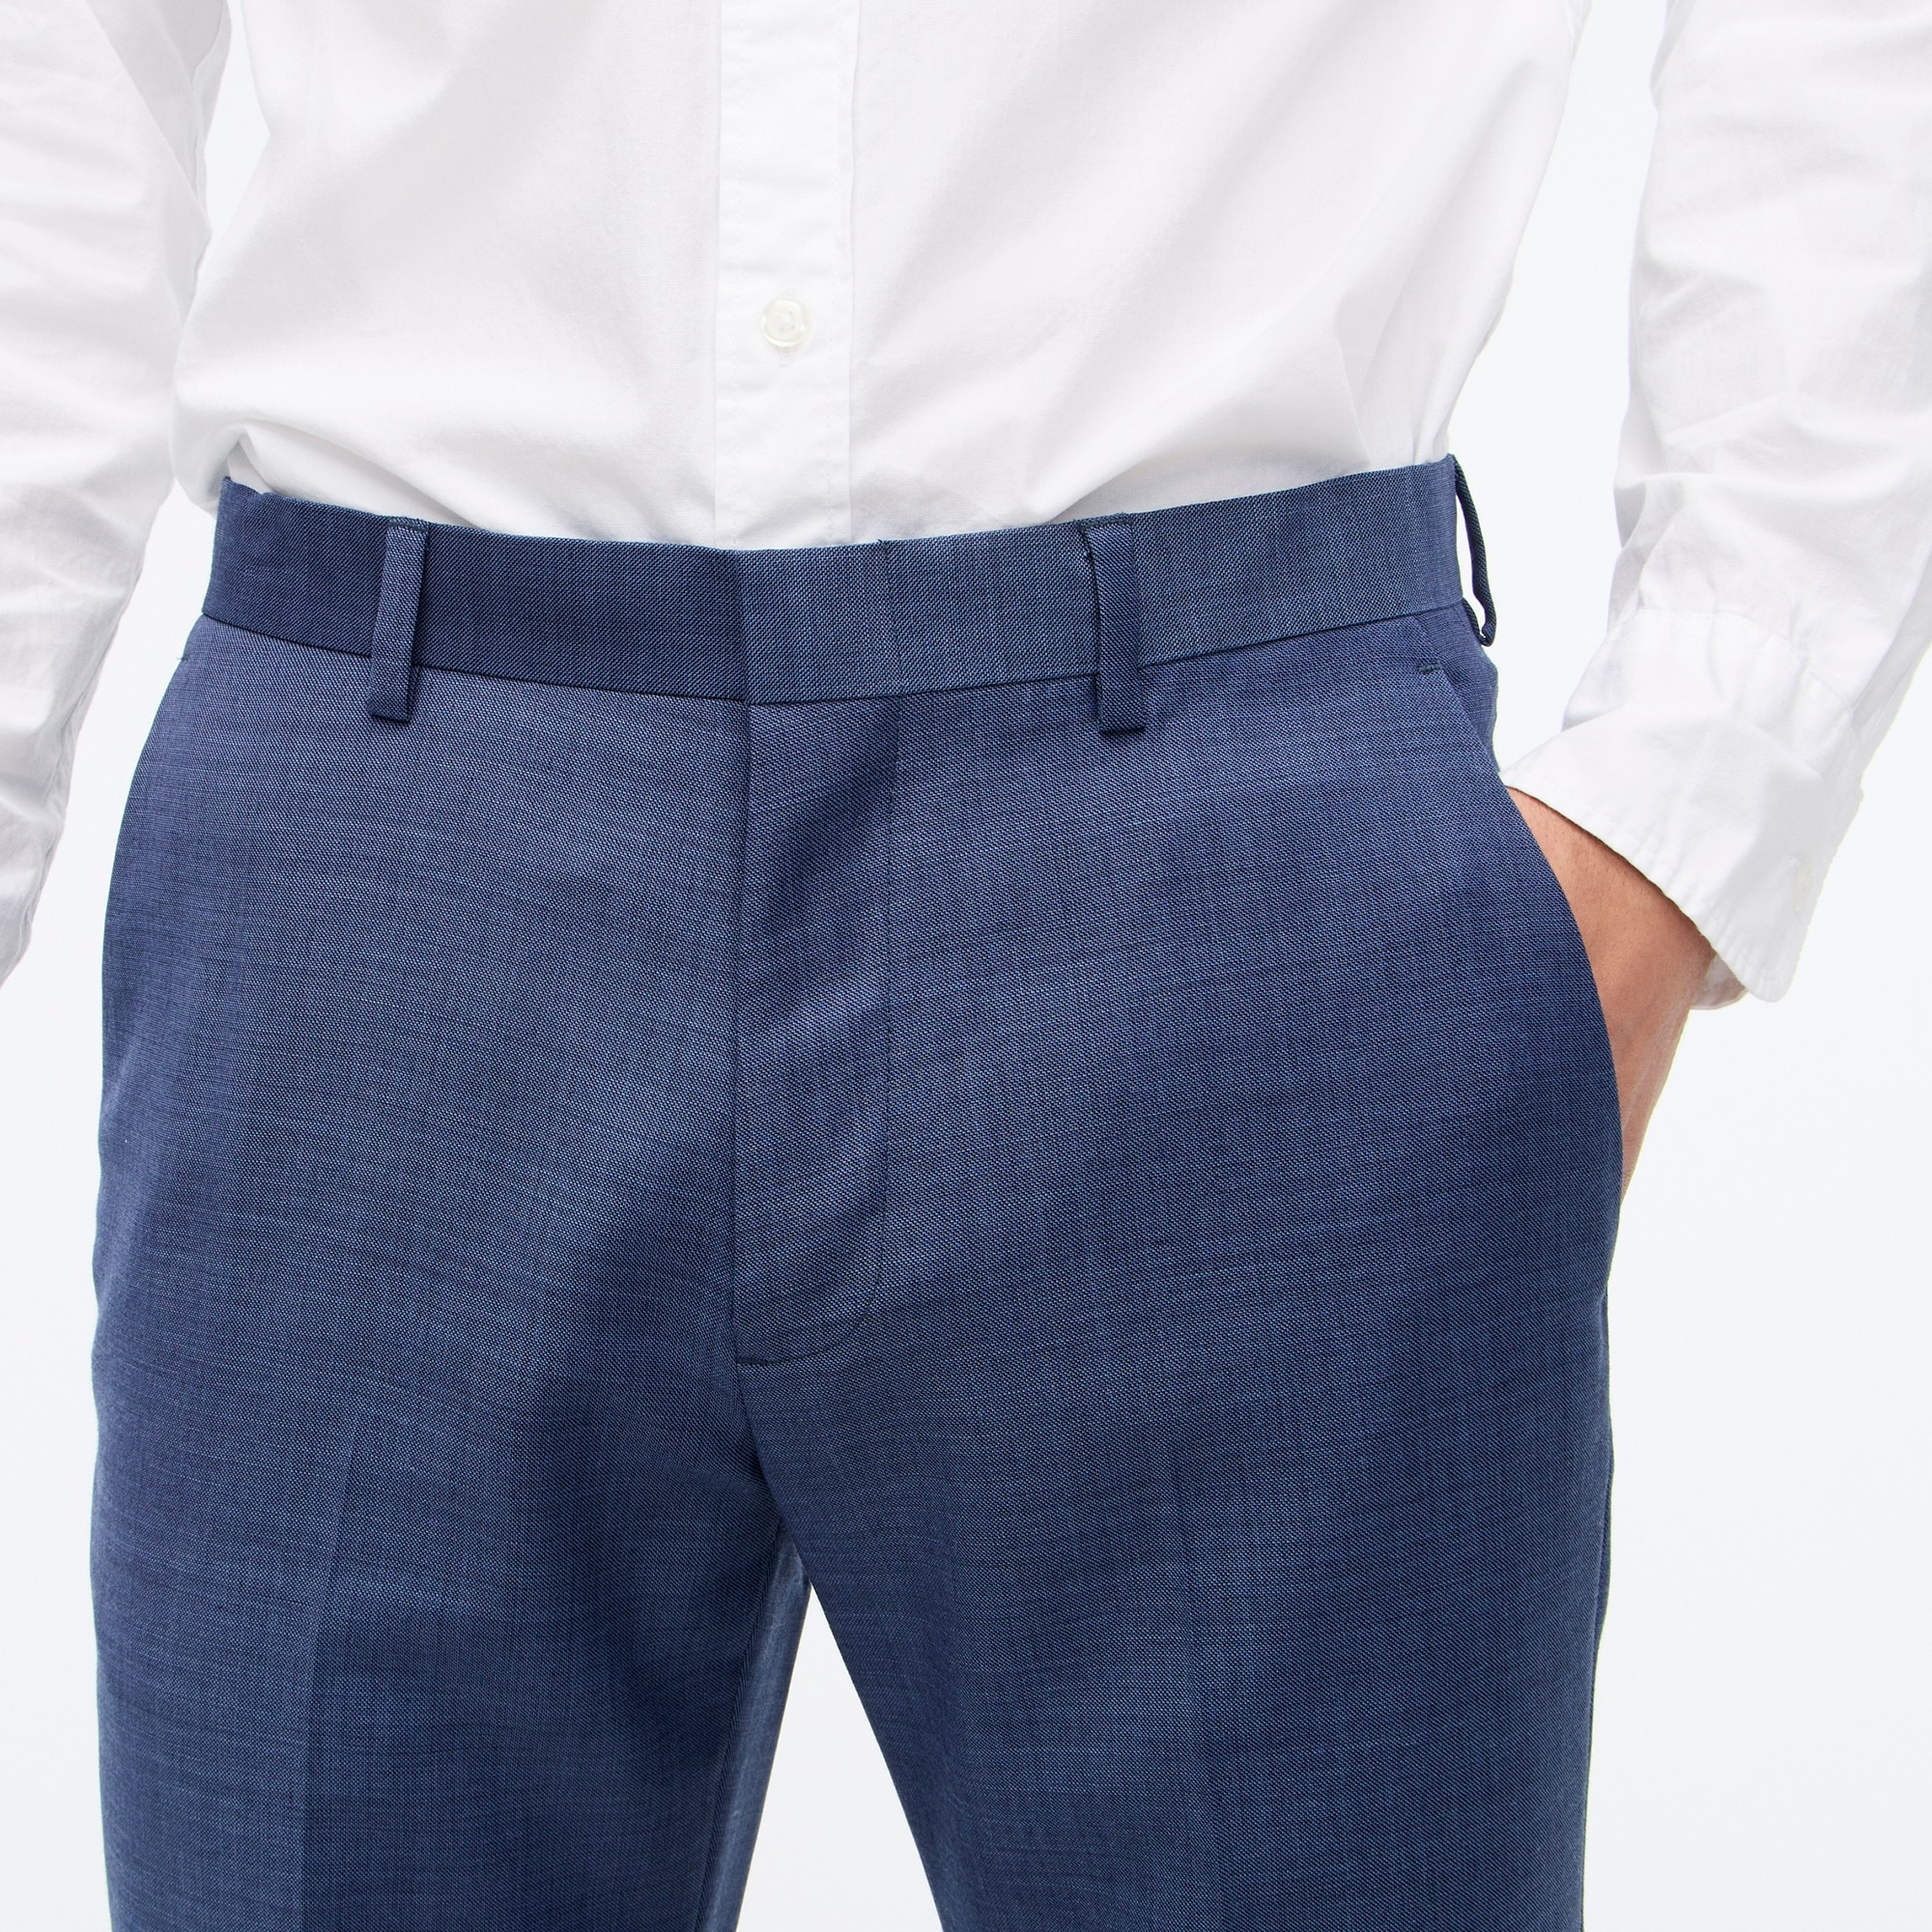 Image 2 for Slim Thompson suit pant in worsted wool